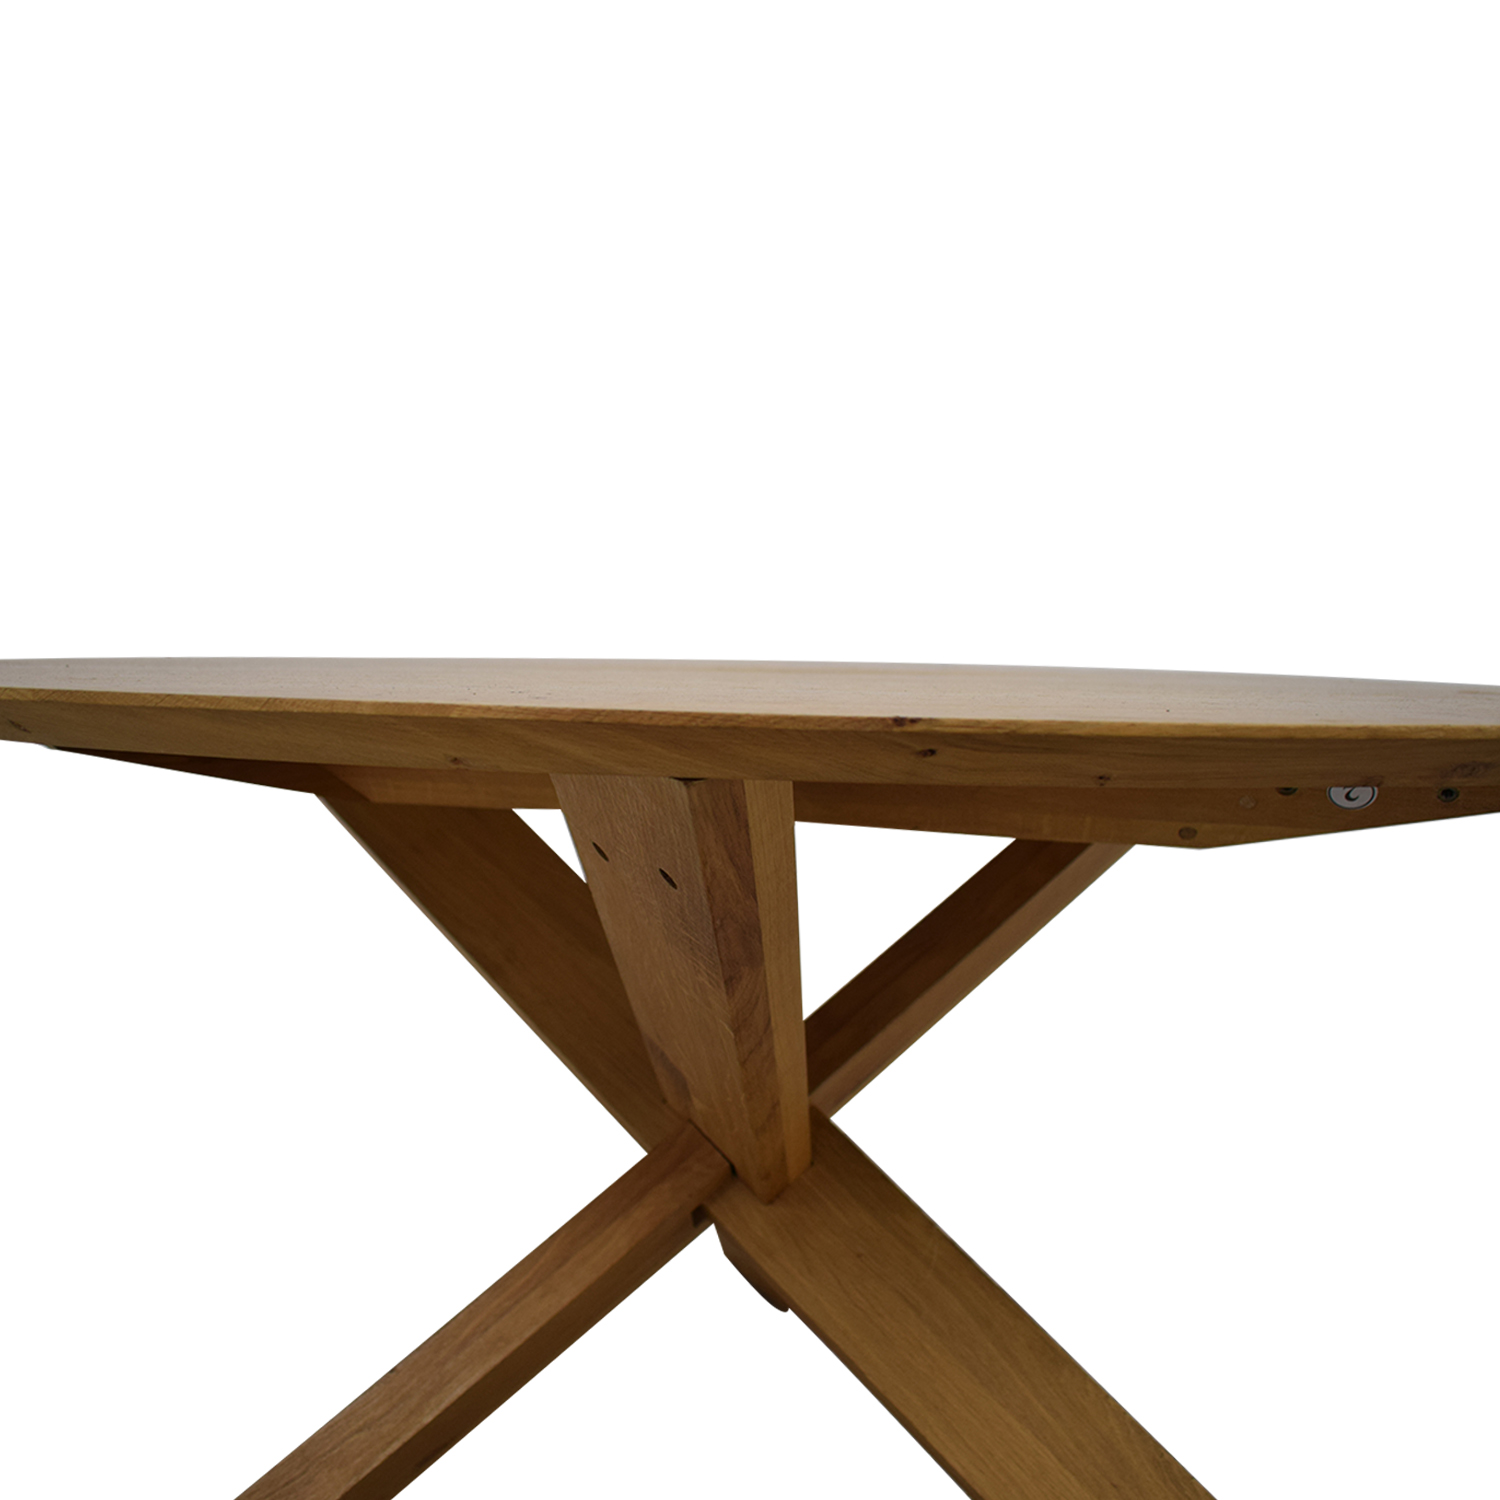 Ethnicraft Ethnicraft Circle Dining Table discount